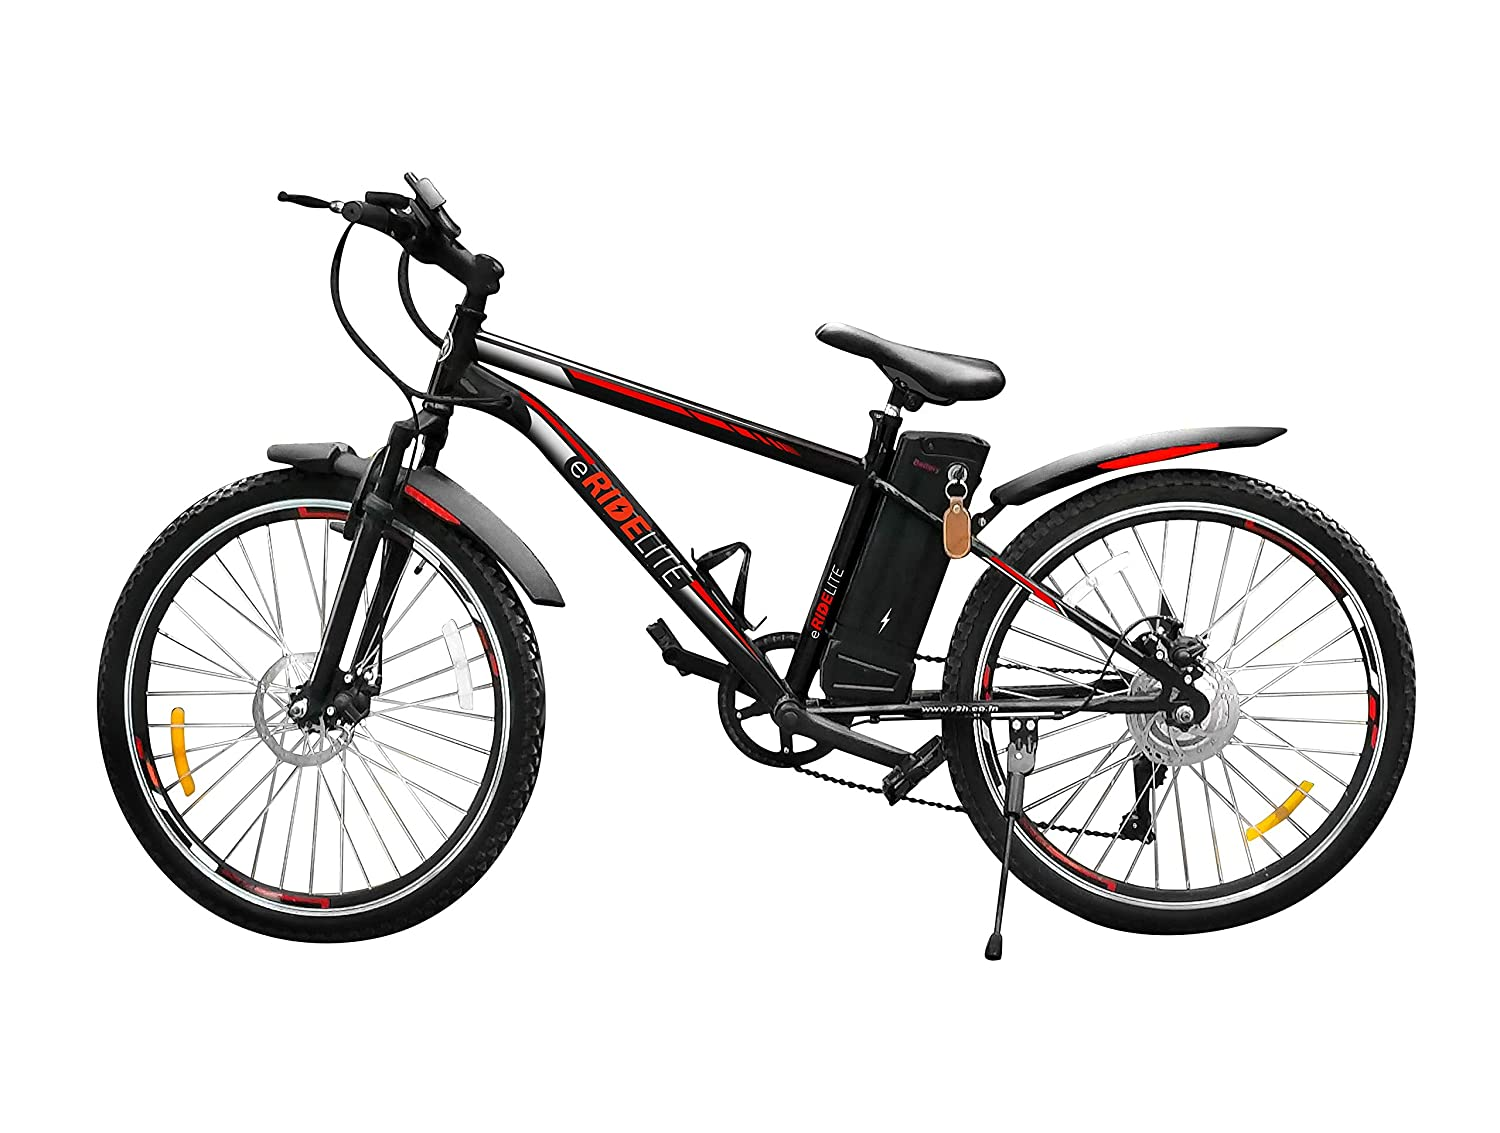 Buy Eridelite Classic Erl50 The Next Generation Electric Bicycle Generator Systems Pedal Power Generators With Li Ion Battery Online At Low Prices In India